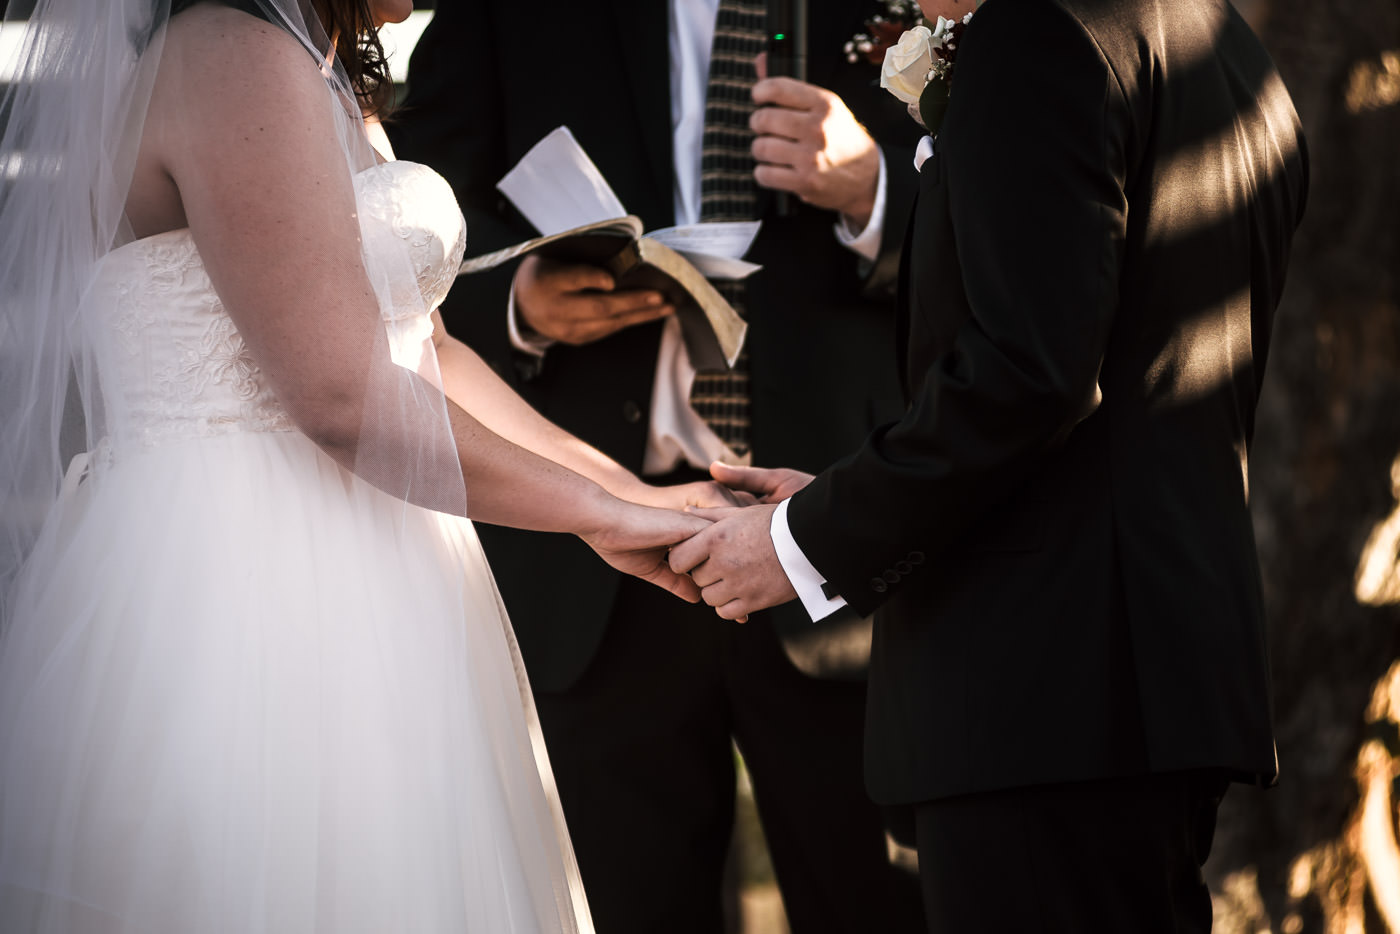 Couple holds hands as they say their vows at their country wedding.